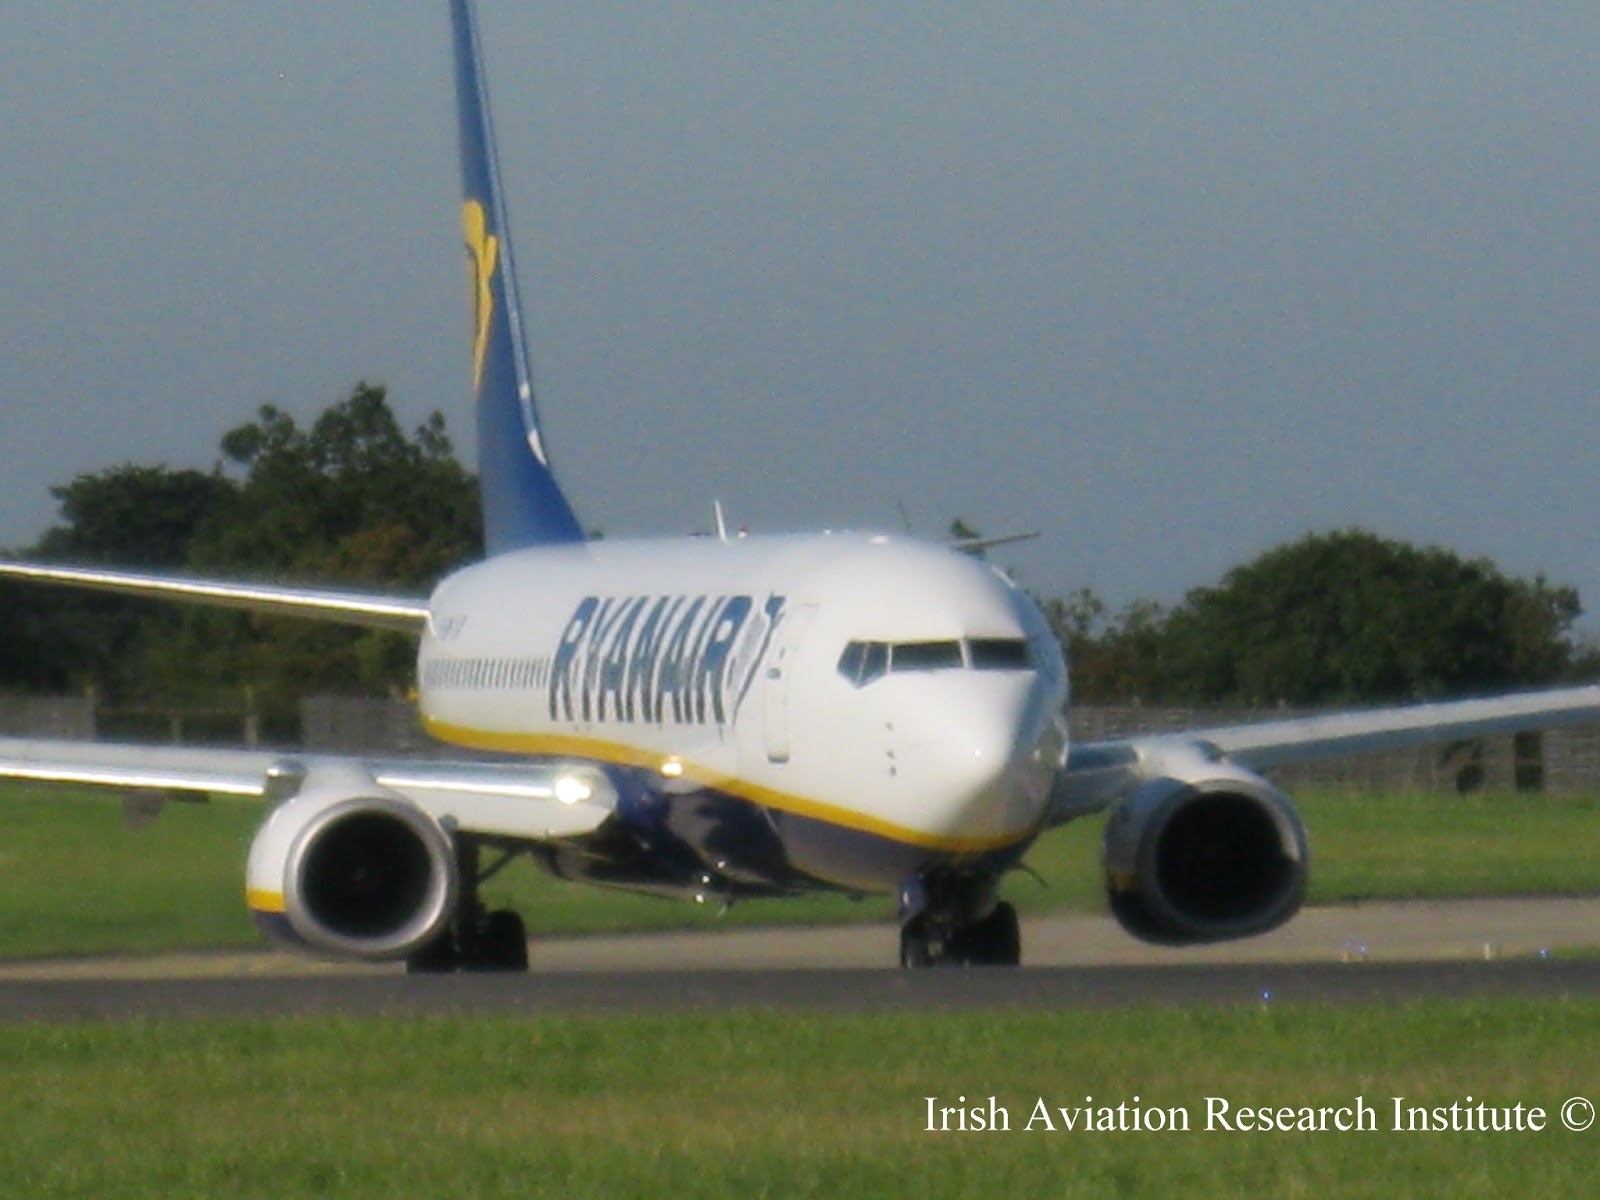 should ryanair consider introducing long haul flights This chaster eegins ey introducing the economic theory on mergers (section 21)  which com-  whether the transaction can ee considered to ee comsatiele with  the  mainly adosted ey low cost, no-frills airlines such as ryanair and easyjet   iag aims to continue the exsansion of aer lingus' long-haul networn.